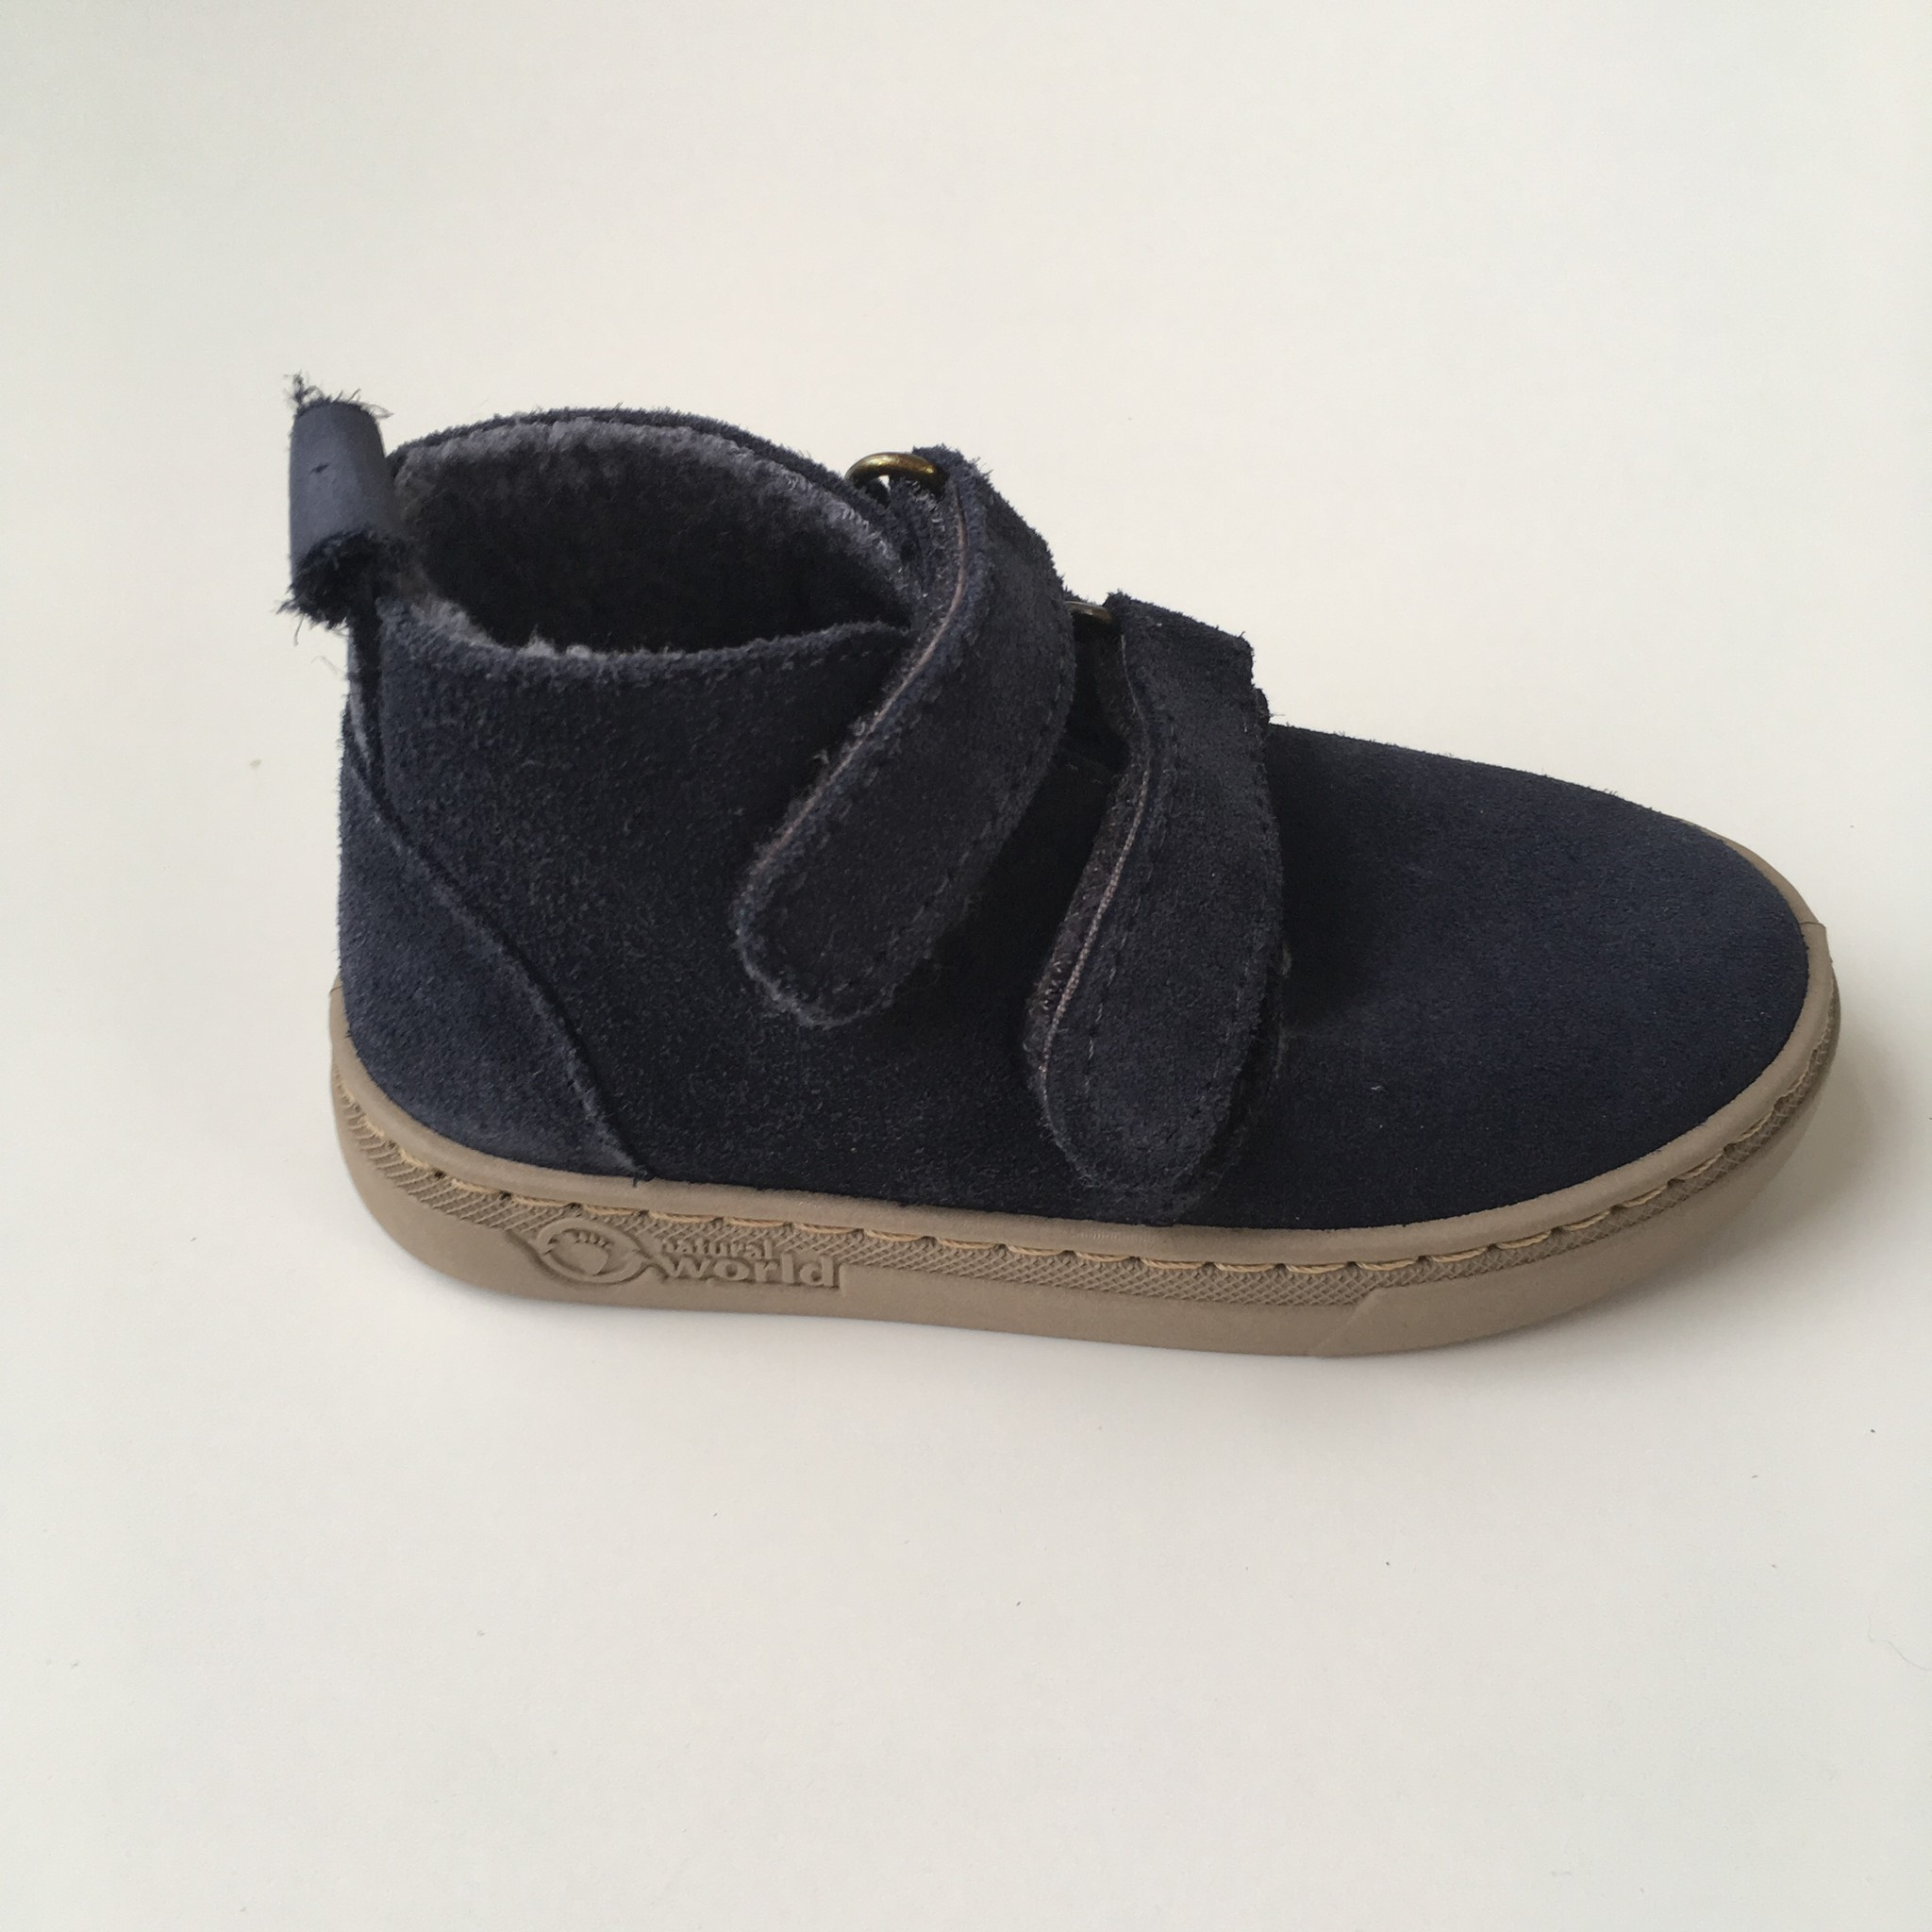 NATURAL WORLD suede ankle boot velcro - wool lined ALAIR - 100% natural rubber sole - blue - 25 to 38